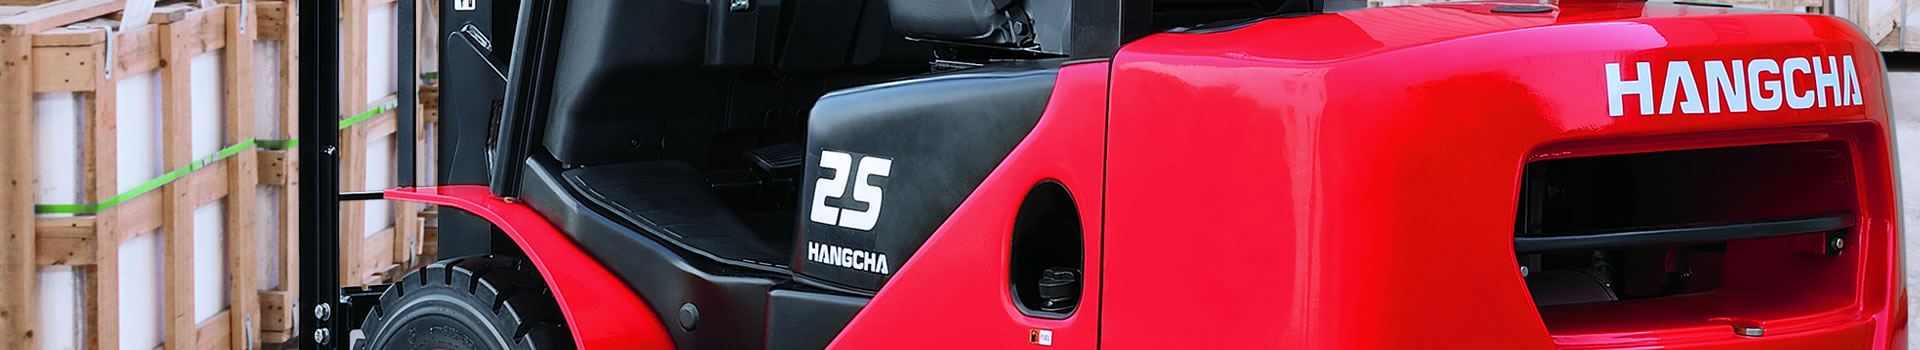 Warehouse Range Hangcha Trucks